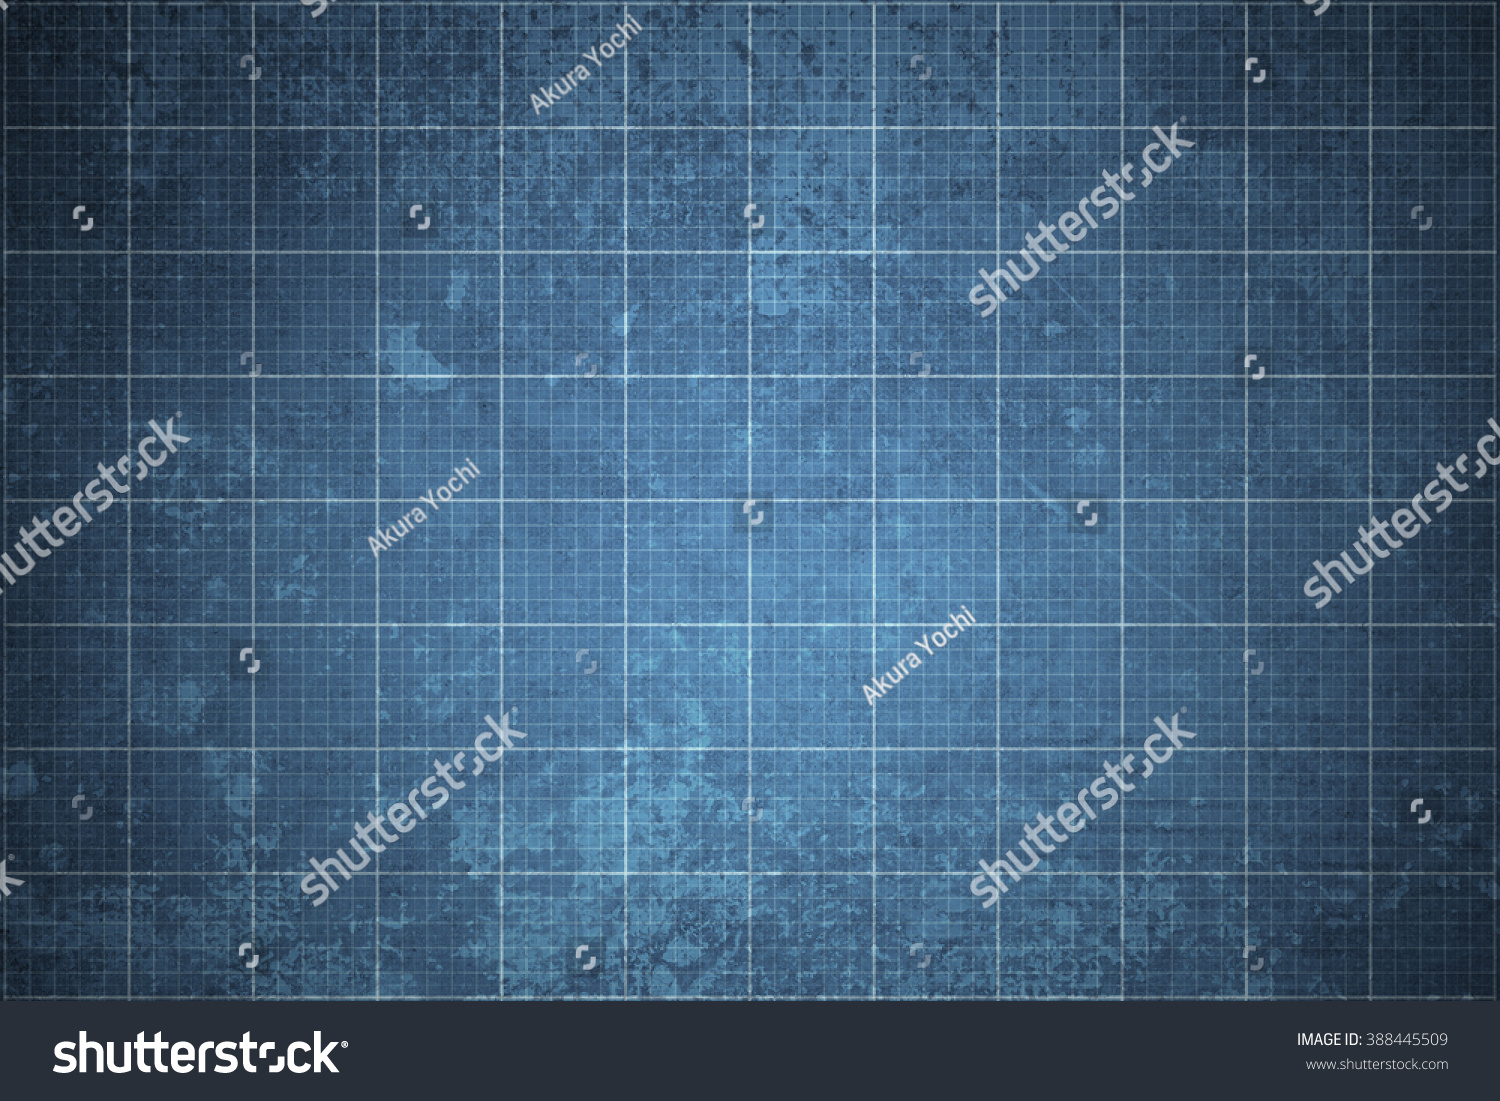 Graph grid seamless squared paper background stock vector blueprint urban blueprint vector architectural background malvernweather Image collections